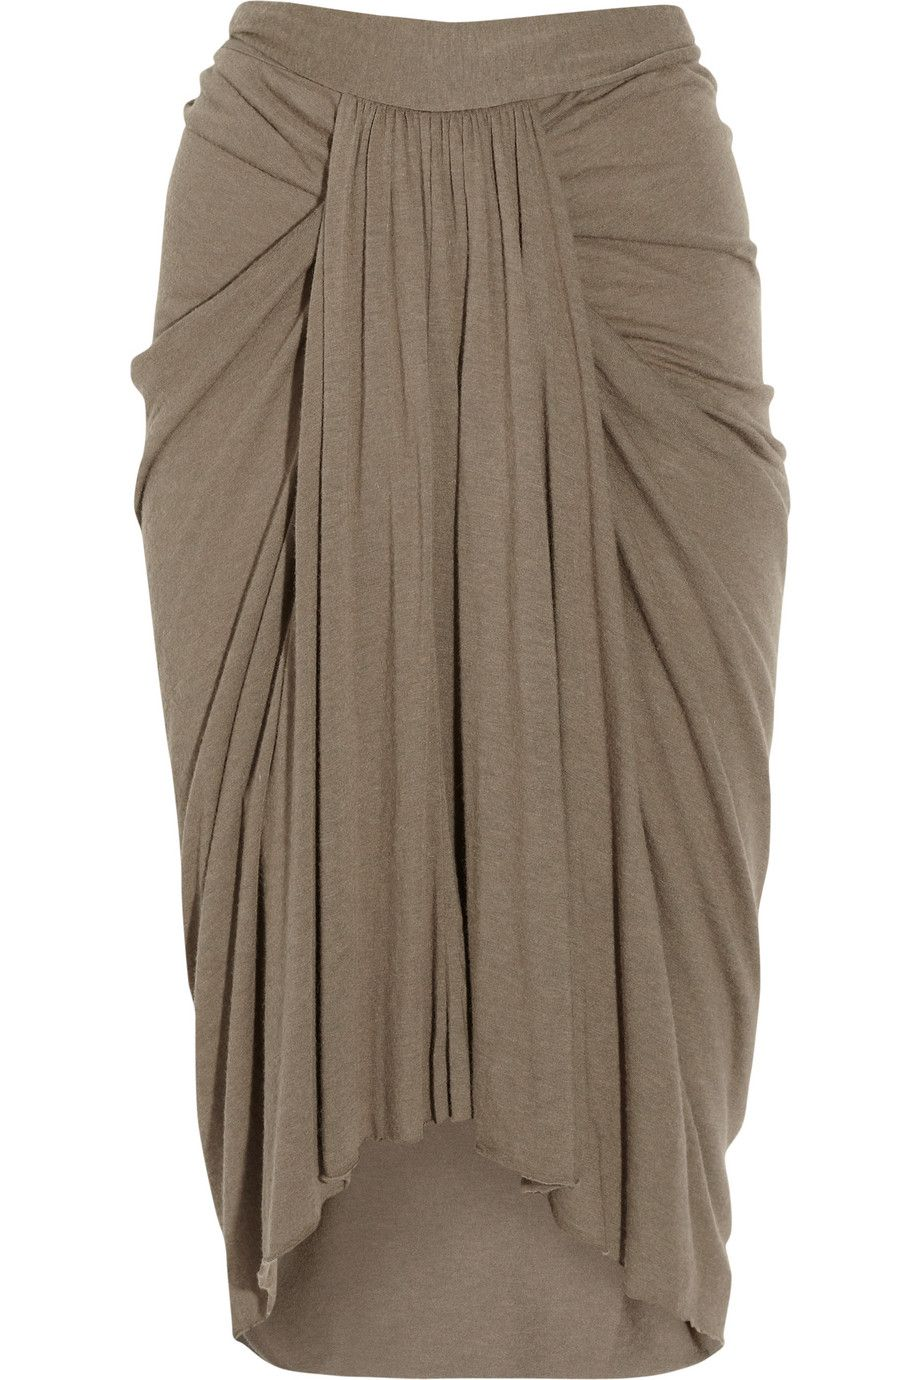 2345dfd19 Love this skirt kinda has an Egyptian look to it I think. I d wear it with  a cute blouse and strappy sandals